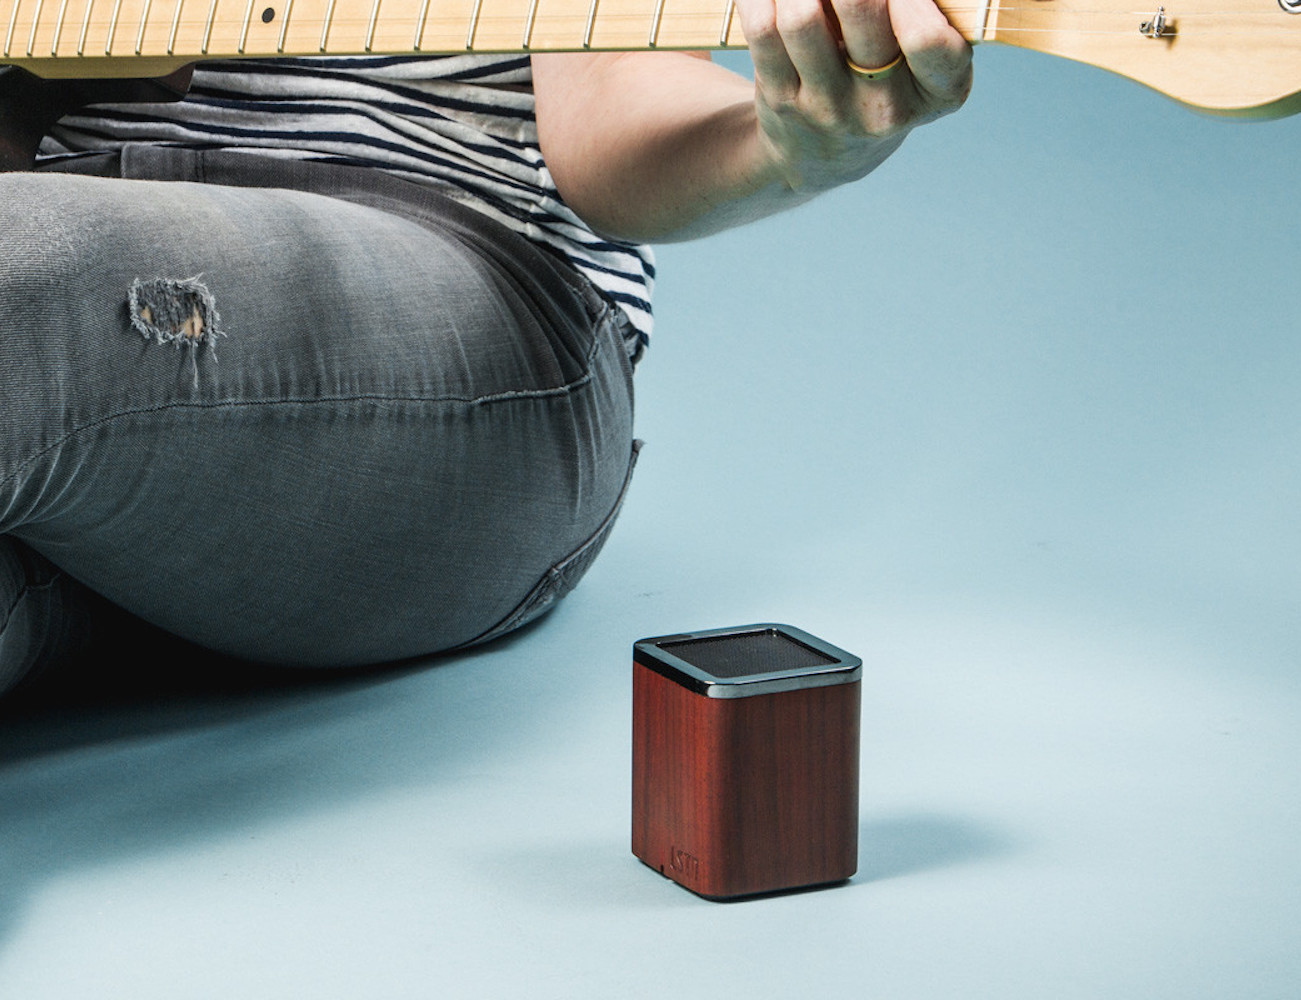 lstn-satellite-portable-wood-speaker-5